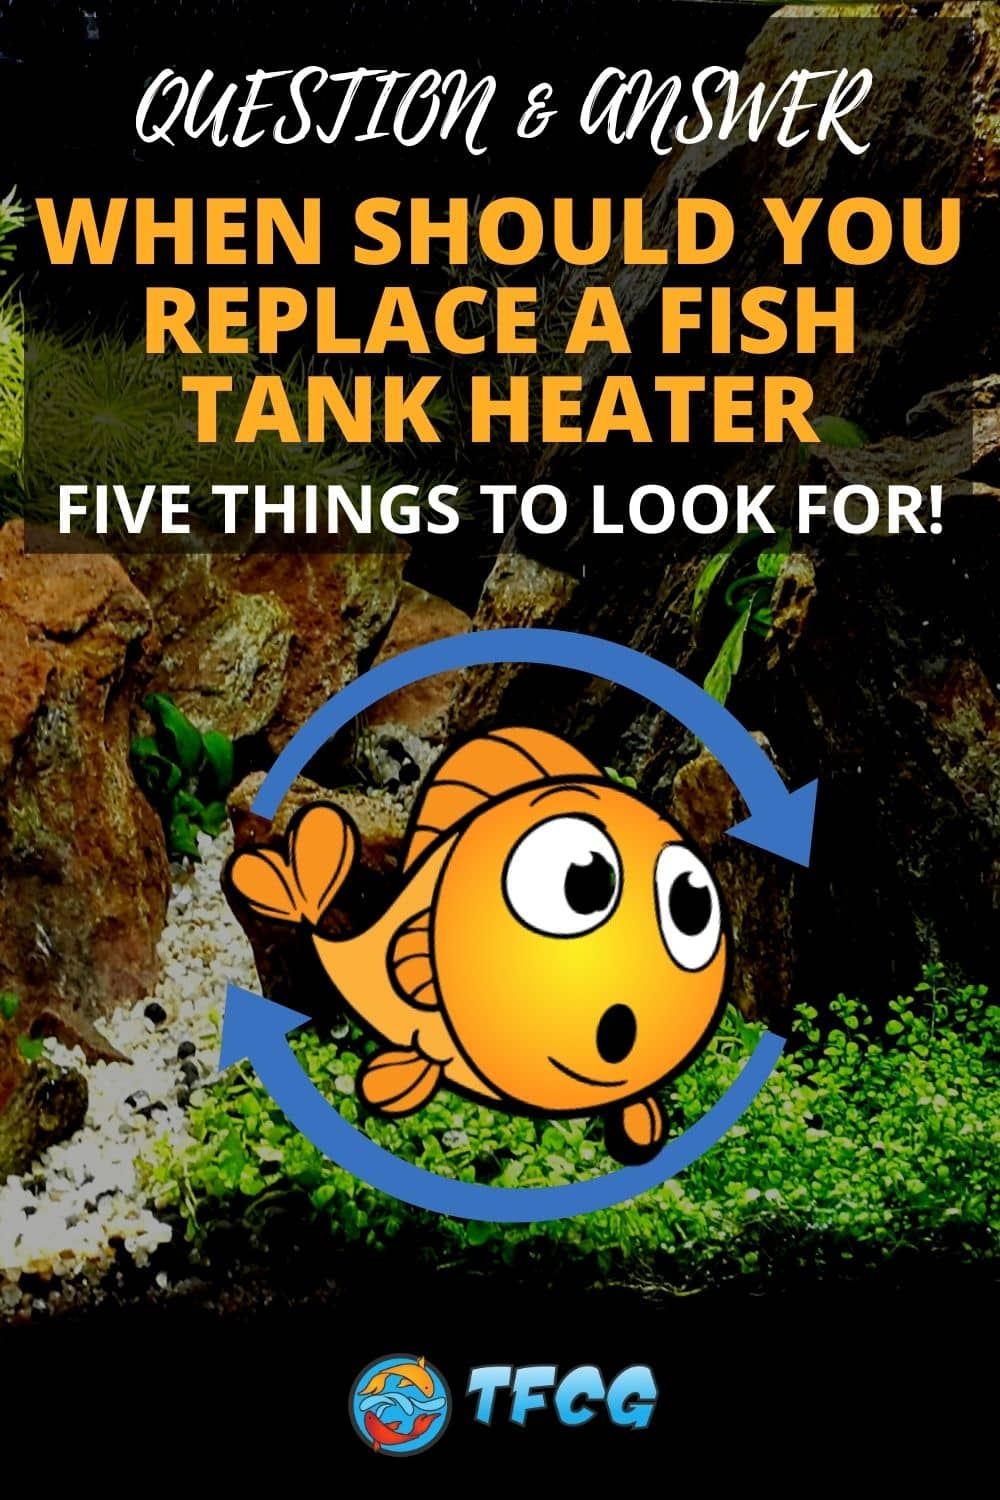 When Should You Replace A Fish Tank Heater